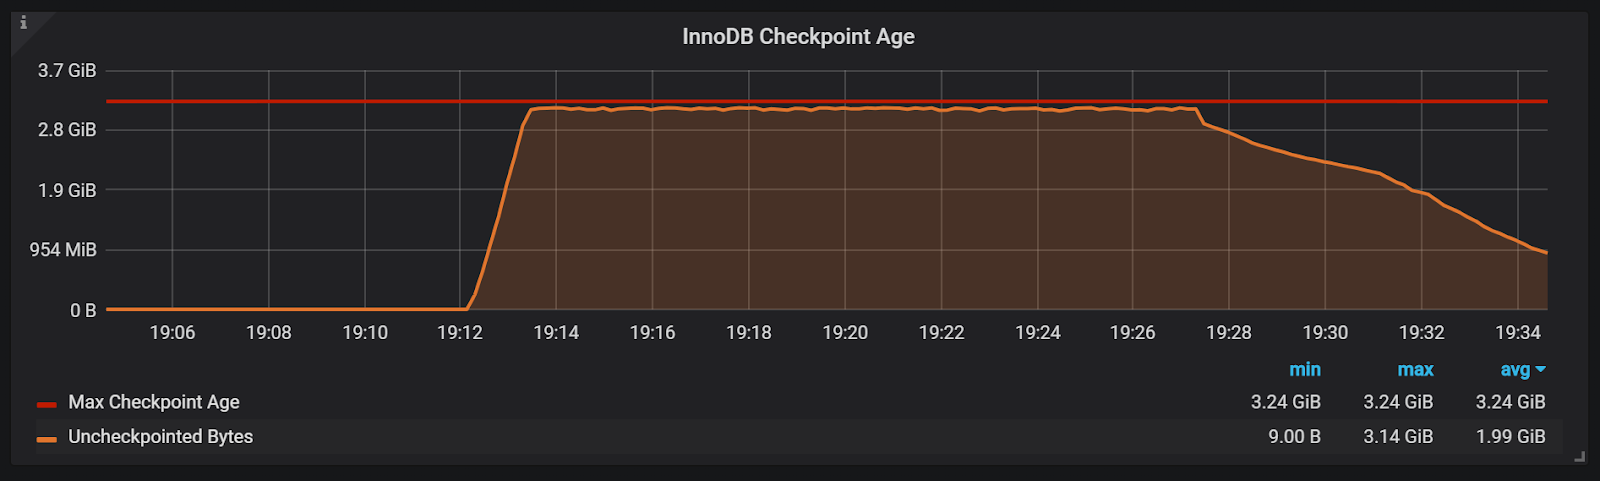 InnoDB Checkpoint Age graph from PMM